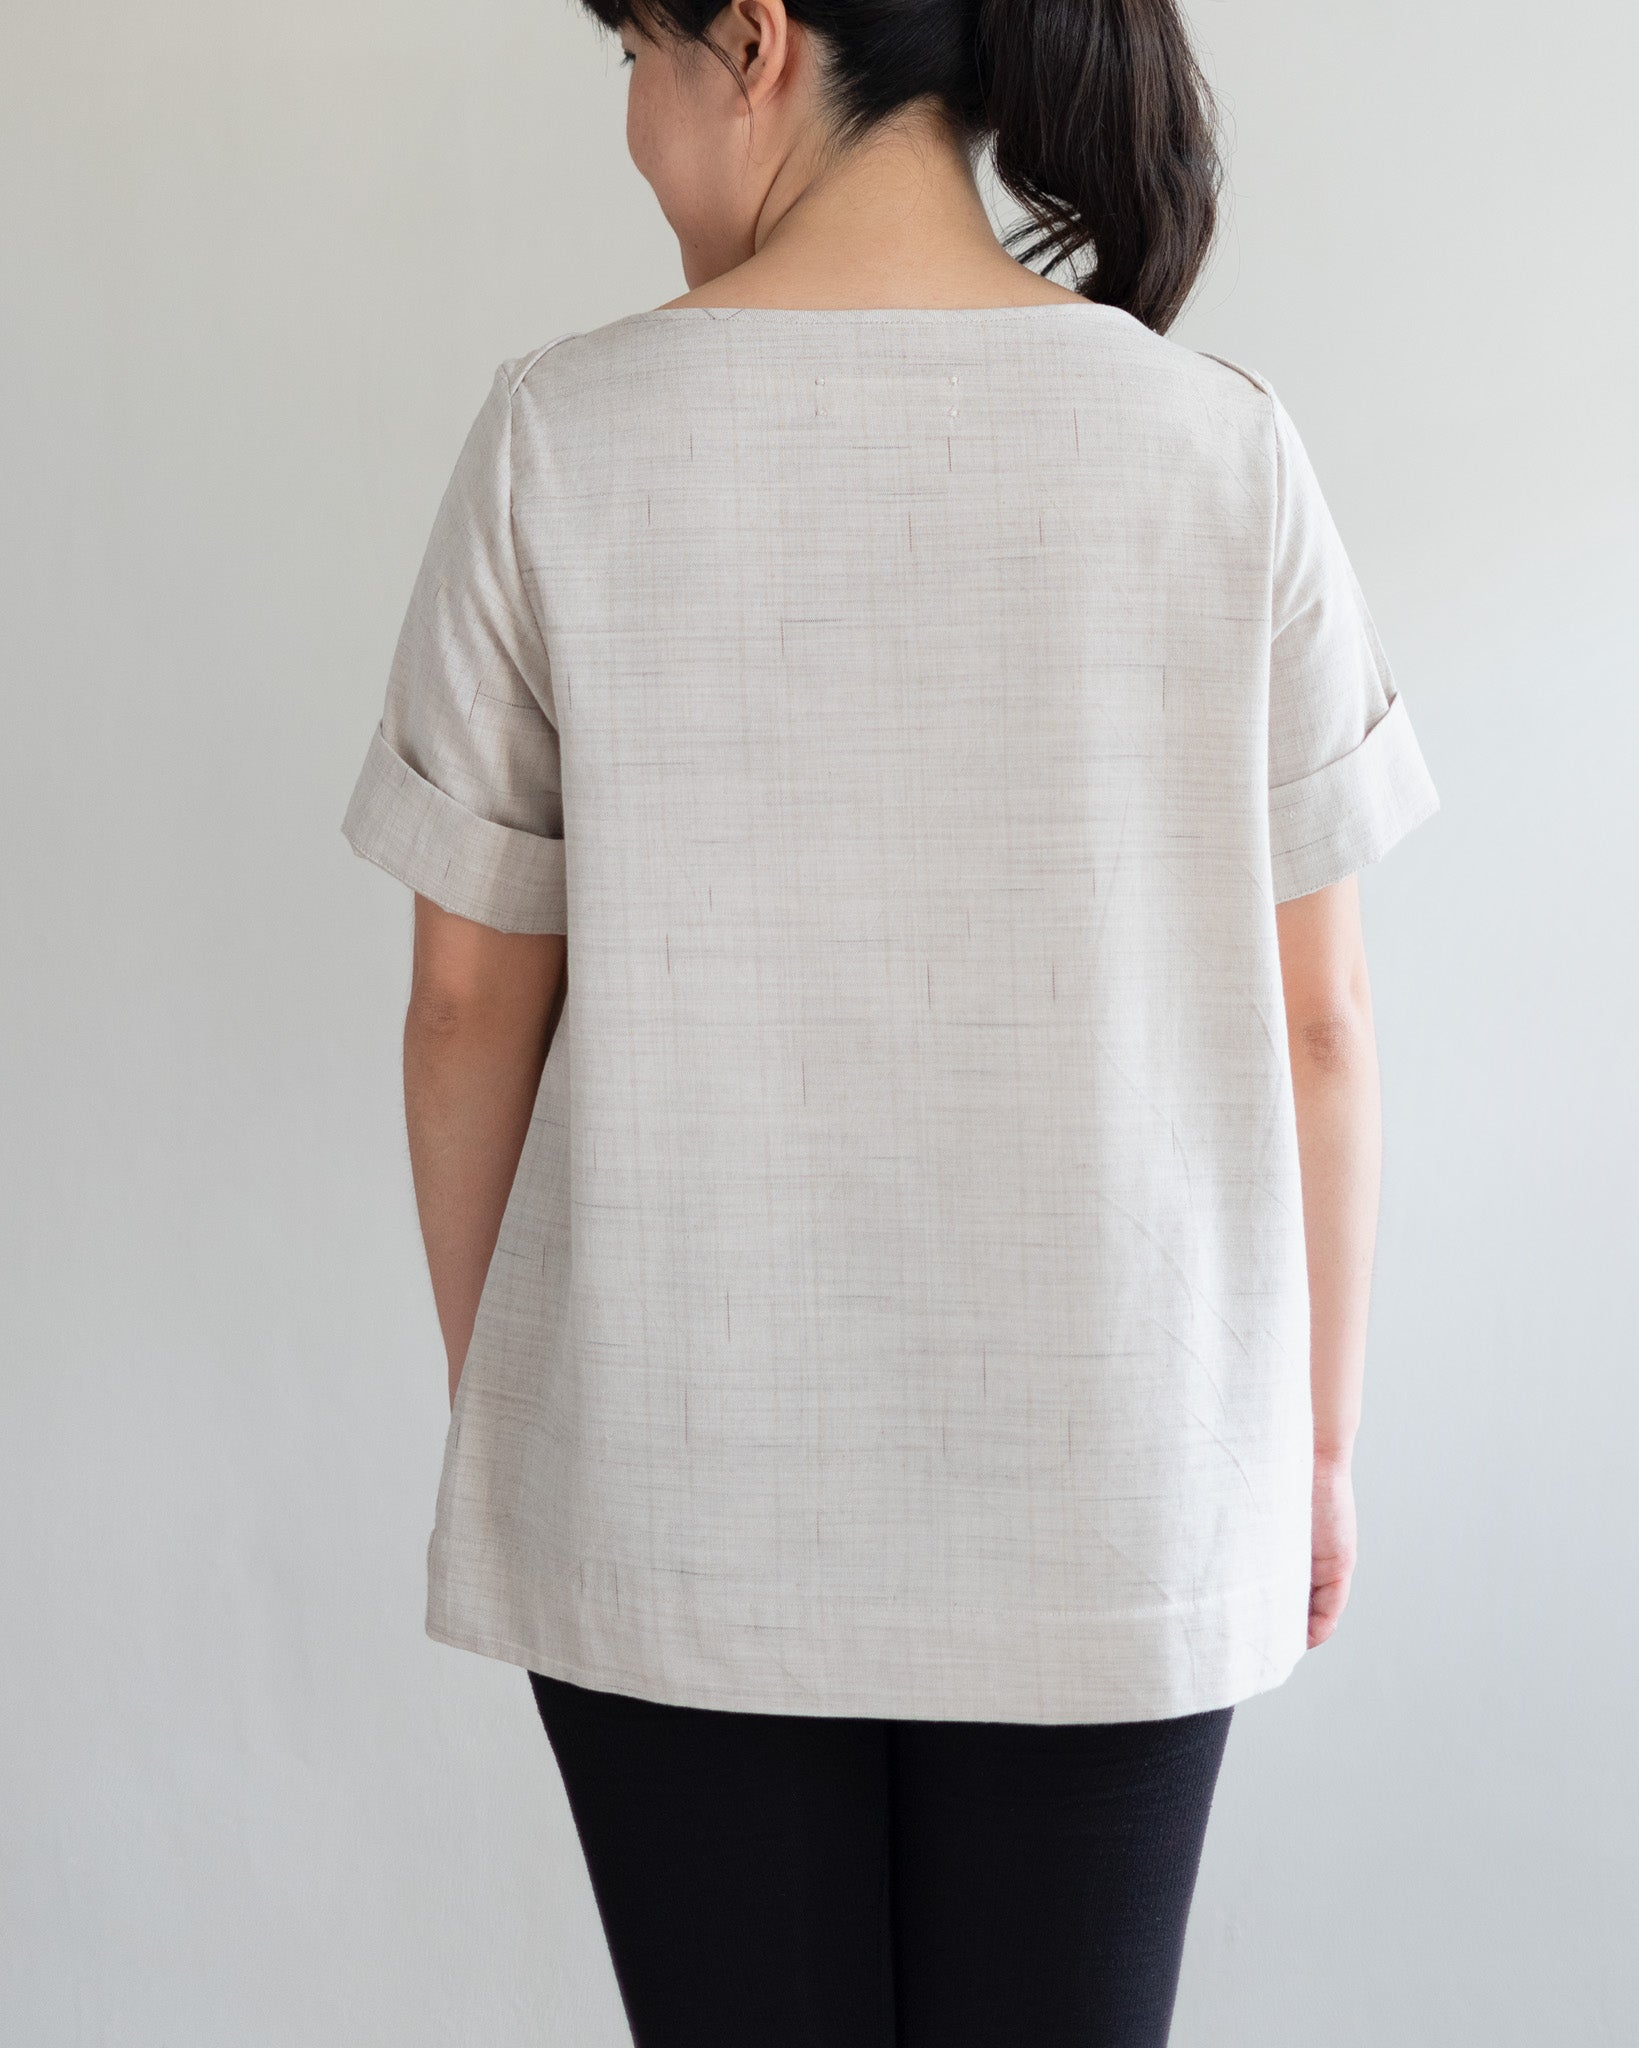 PAGISENJA - Relaxed Tee